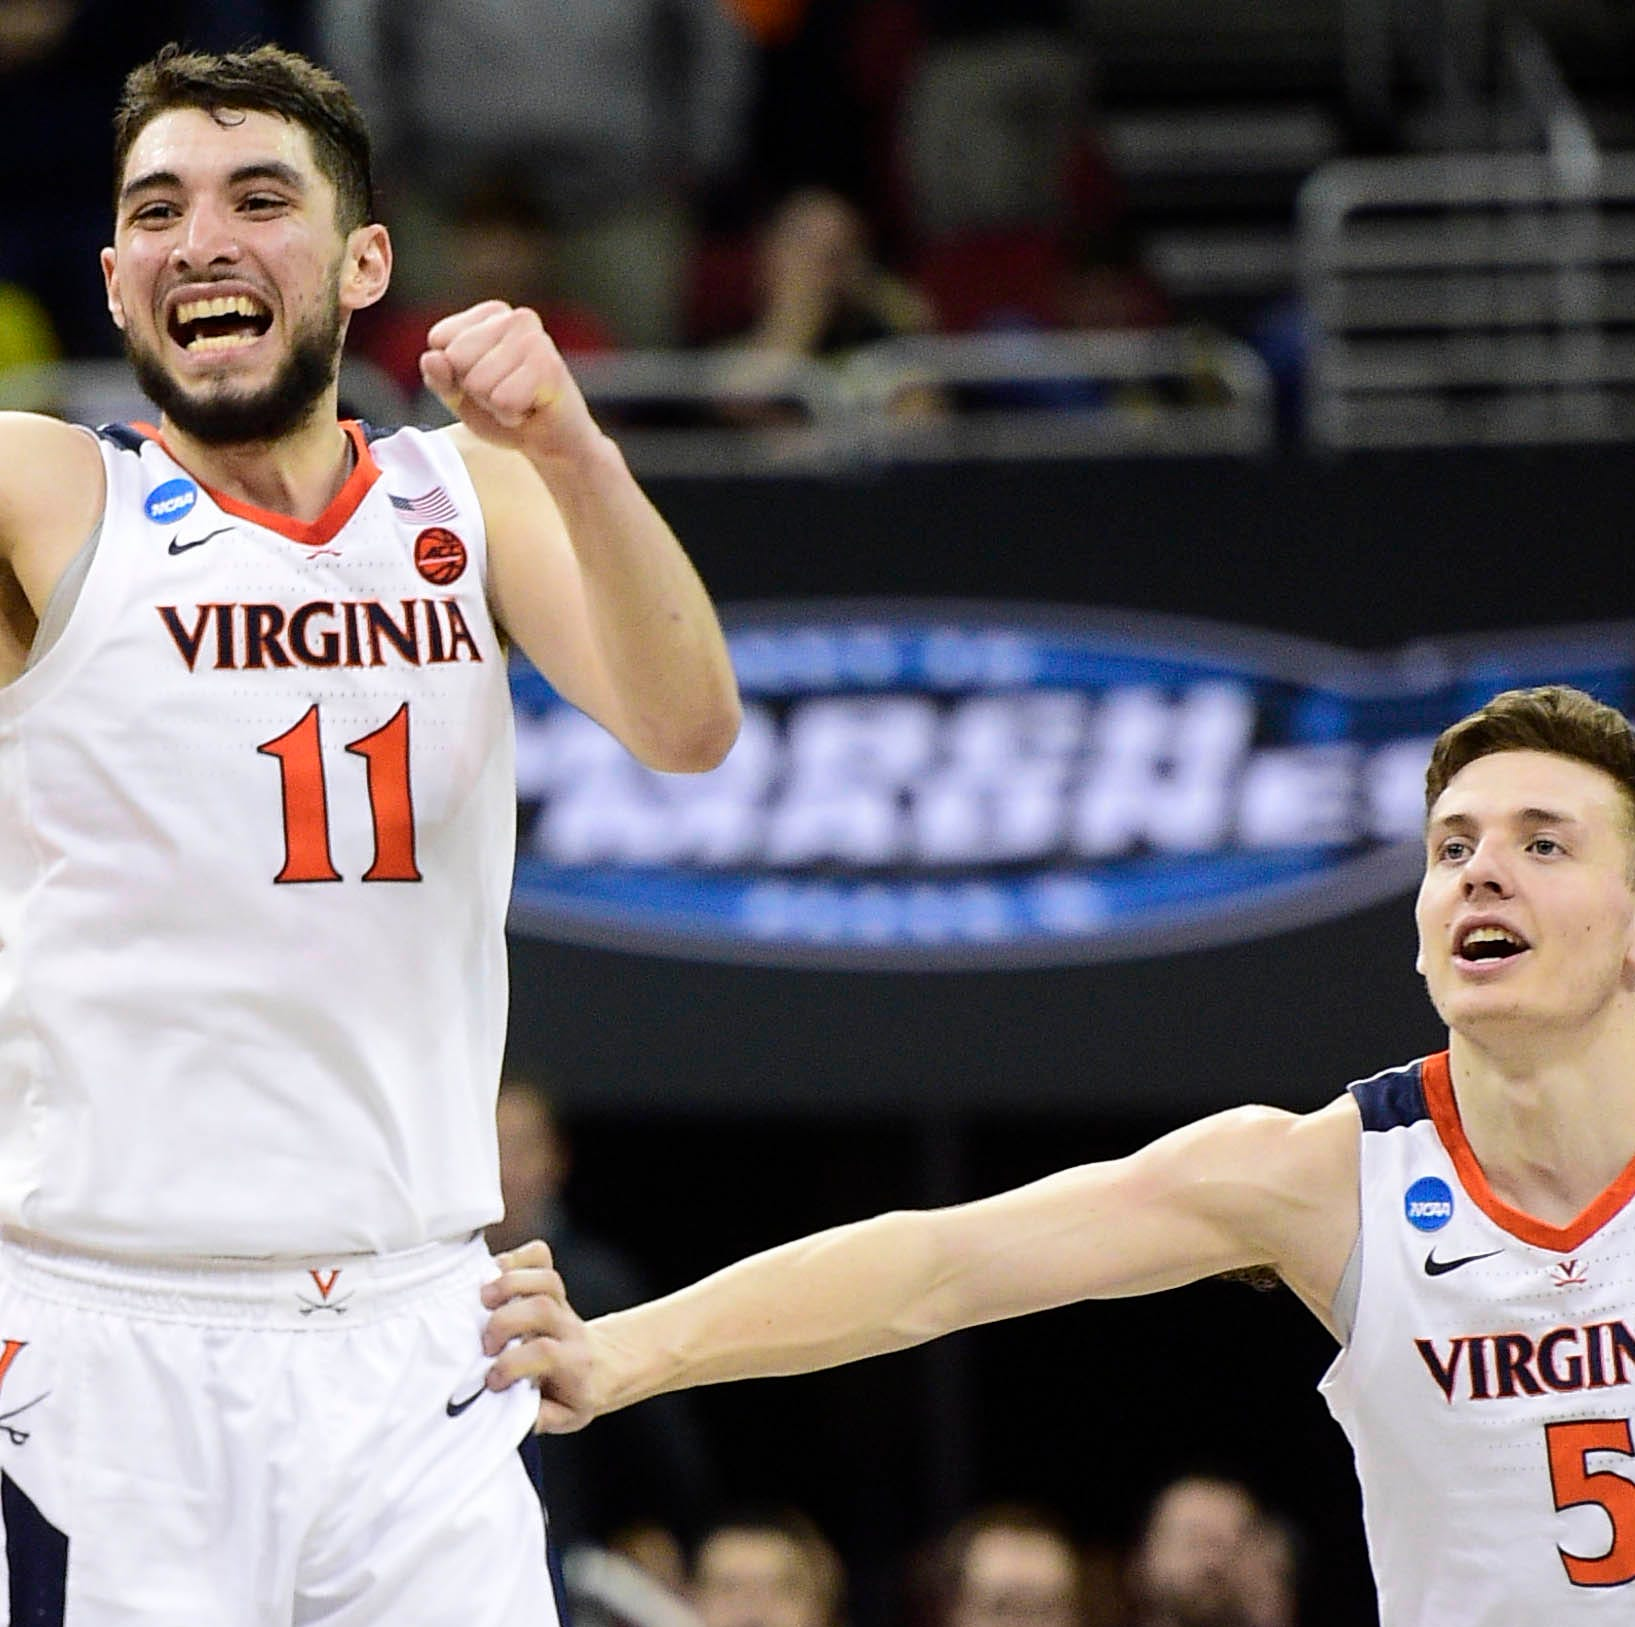 NCAA basketball championship: How to watch, stream, listen live UVA